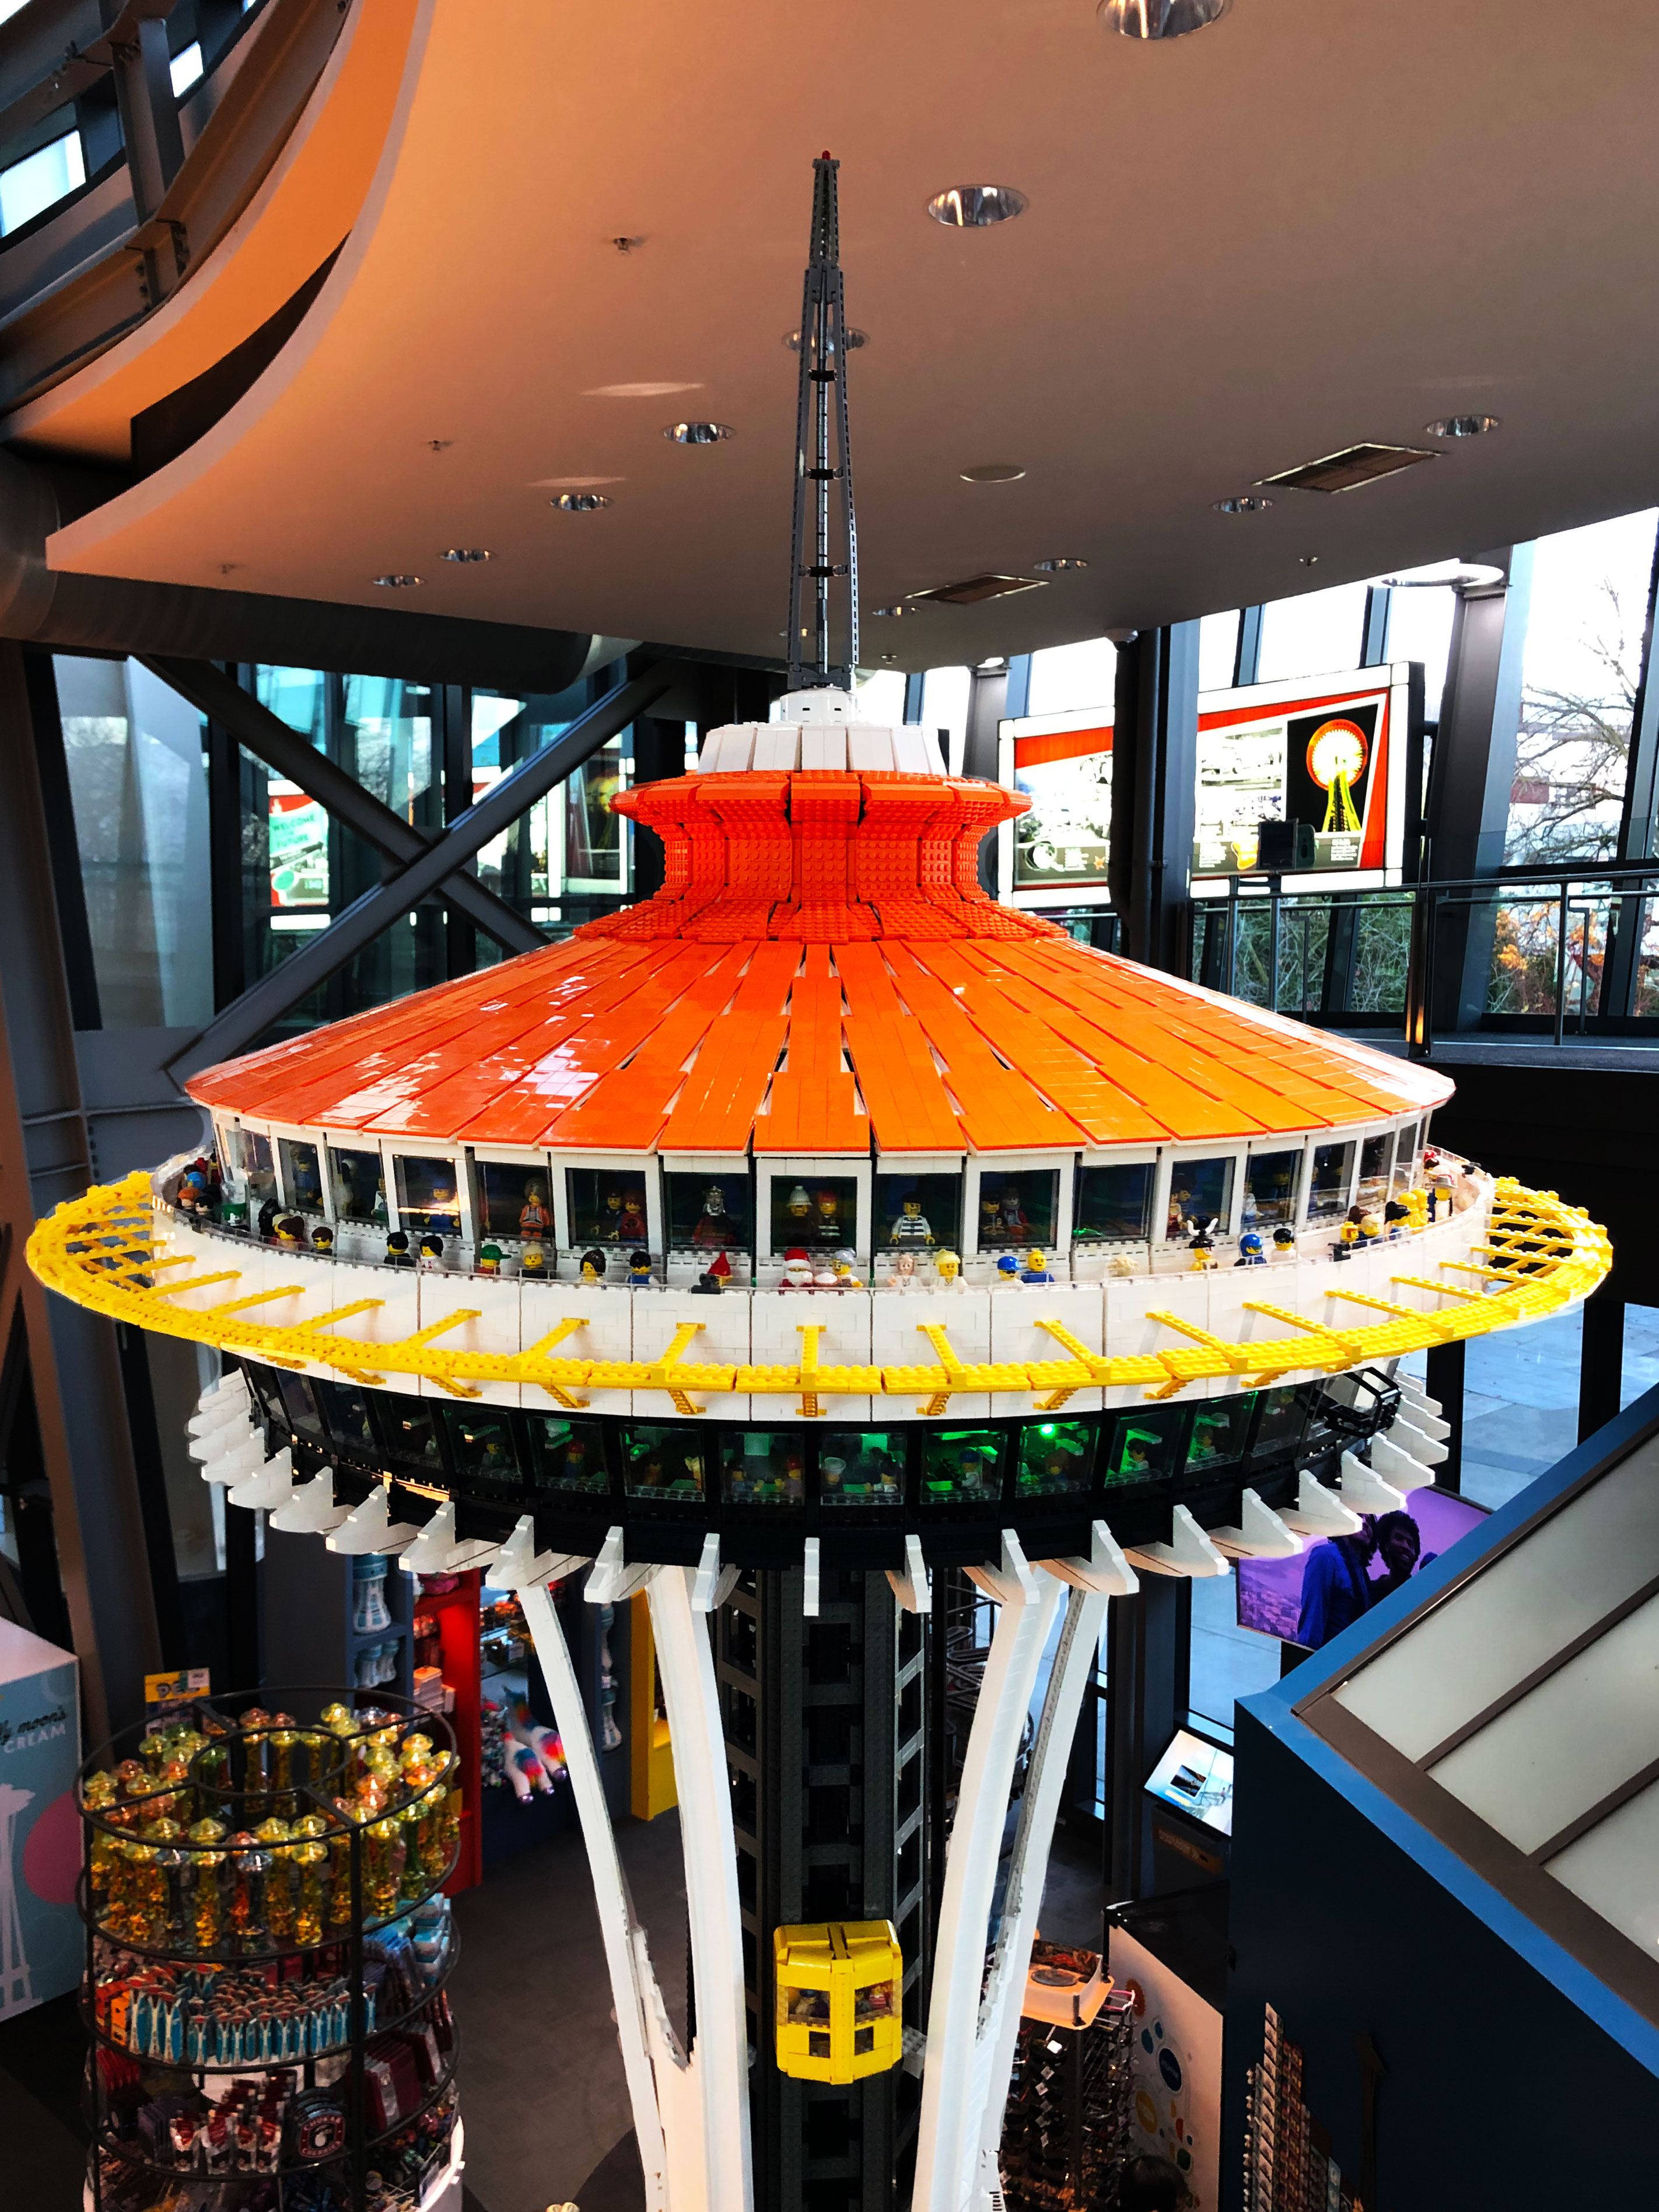 It's taken 15 years of design planning and 55,000 LEGO pieces, but it's finally here... A 14-foot, 150 pound LEGO replica of the Space Needle - at the Space Needle! (Image courtesy of The Space Needle).